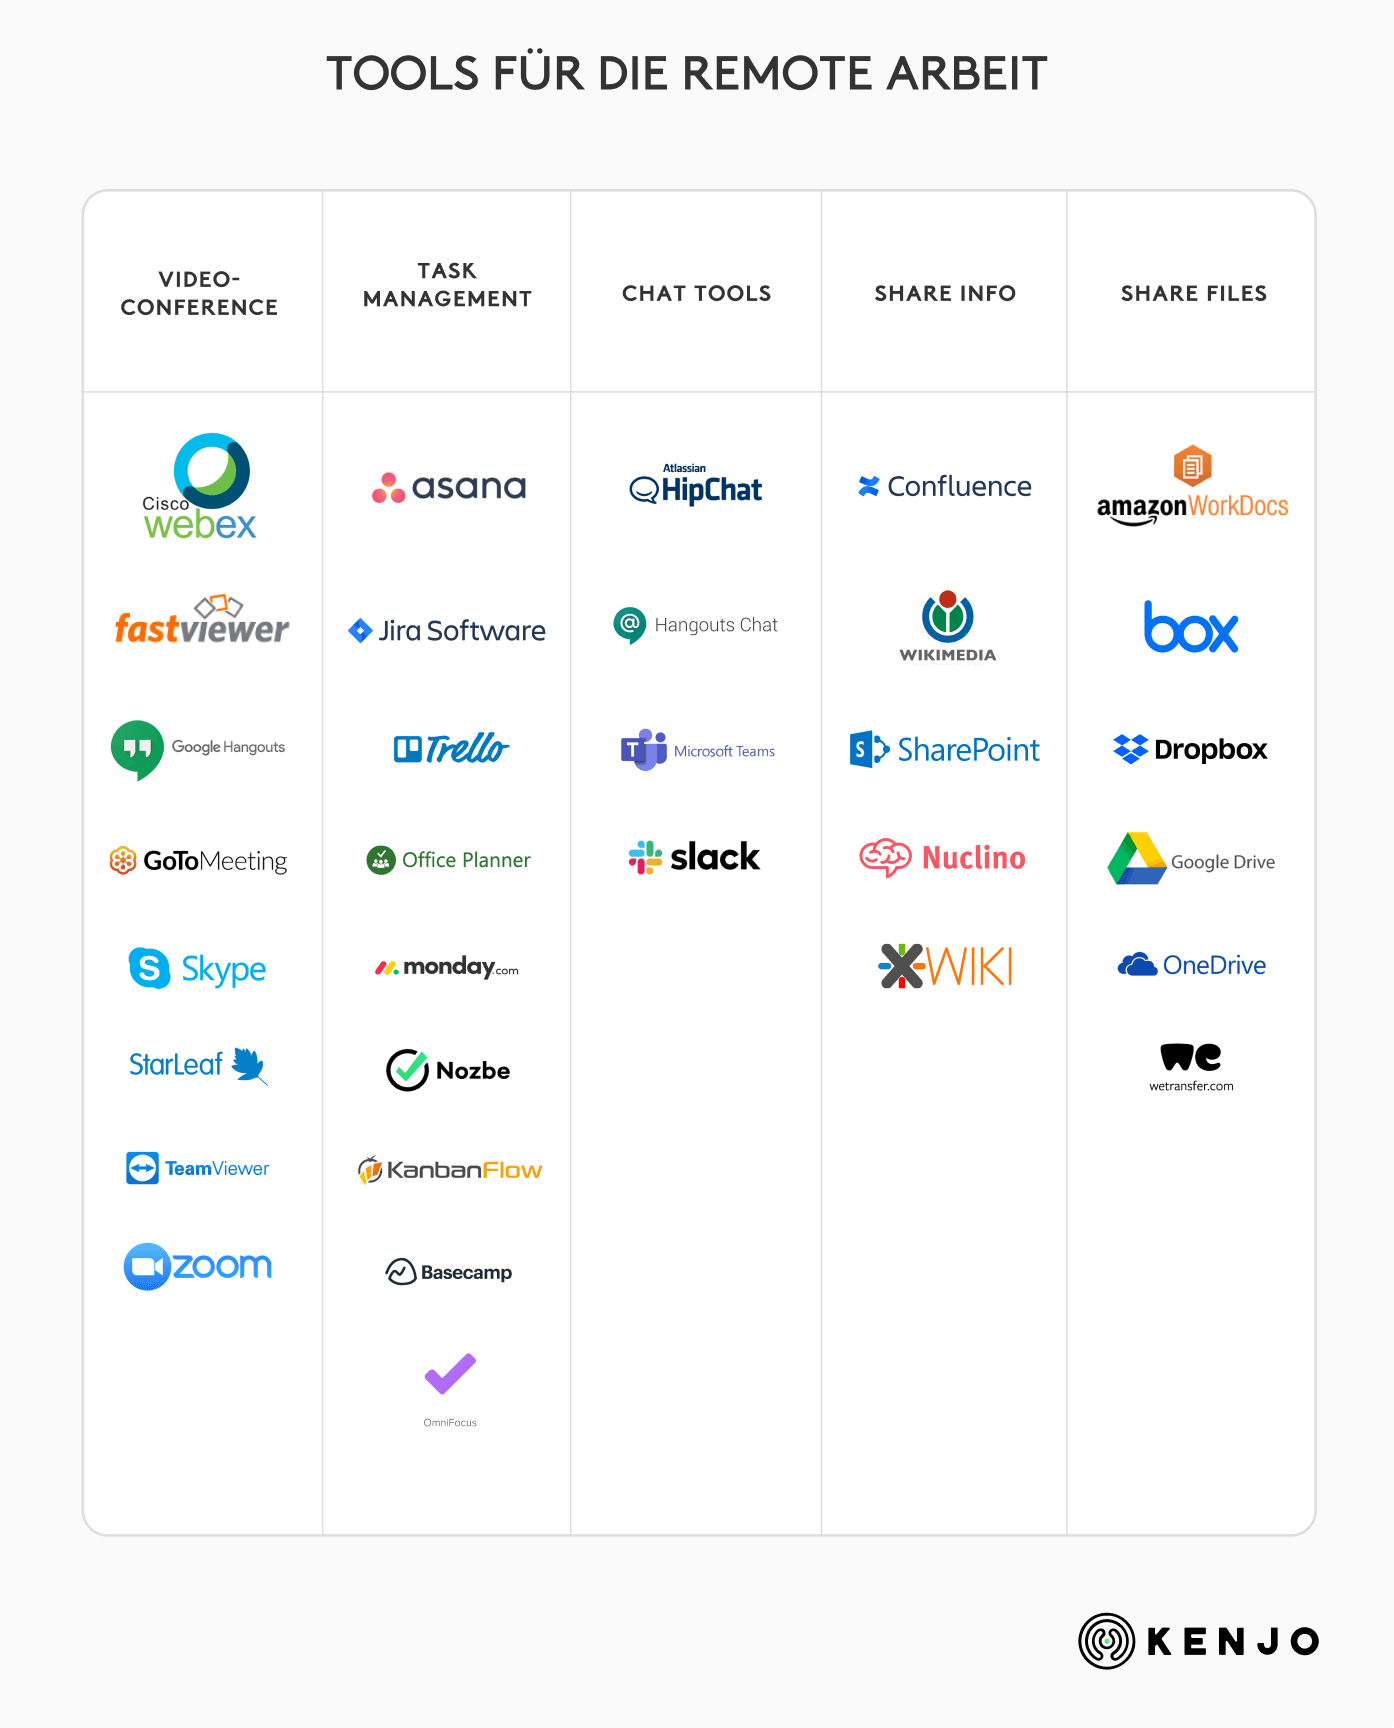 differents tools to work remotely